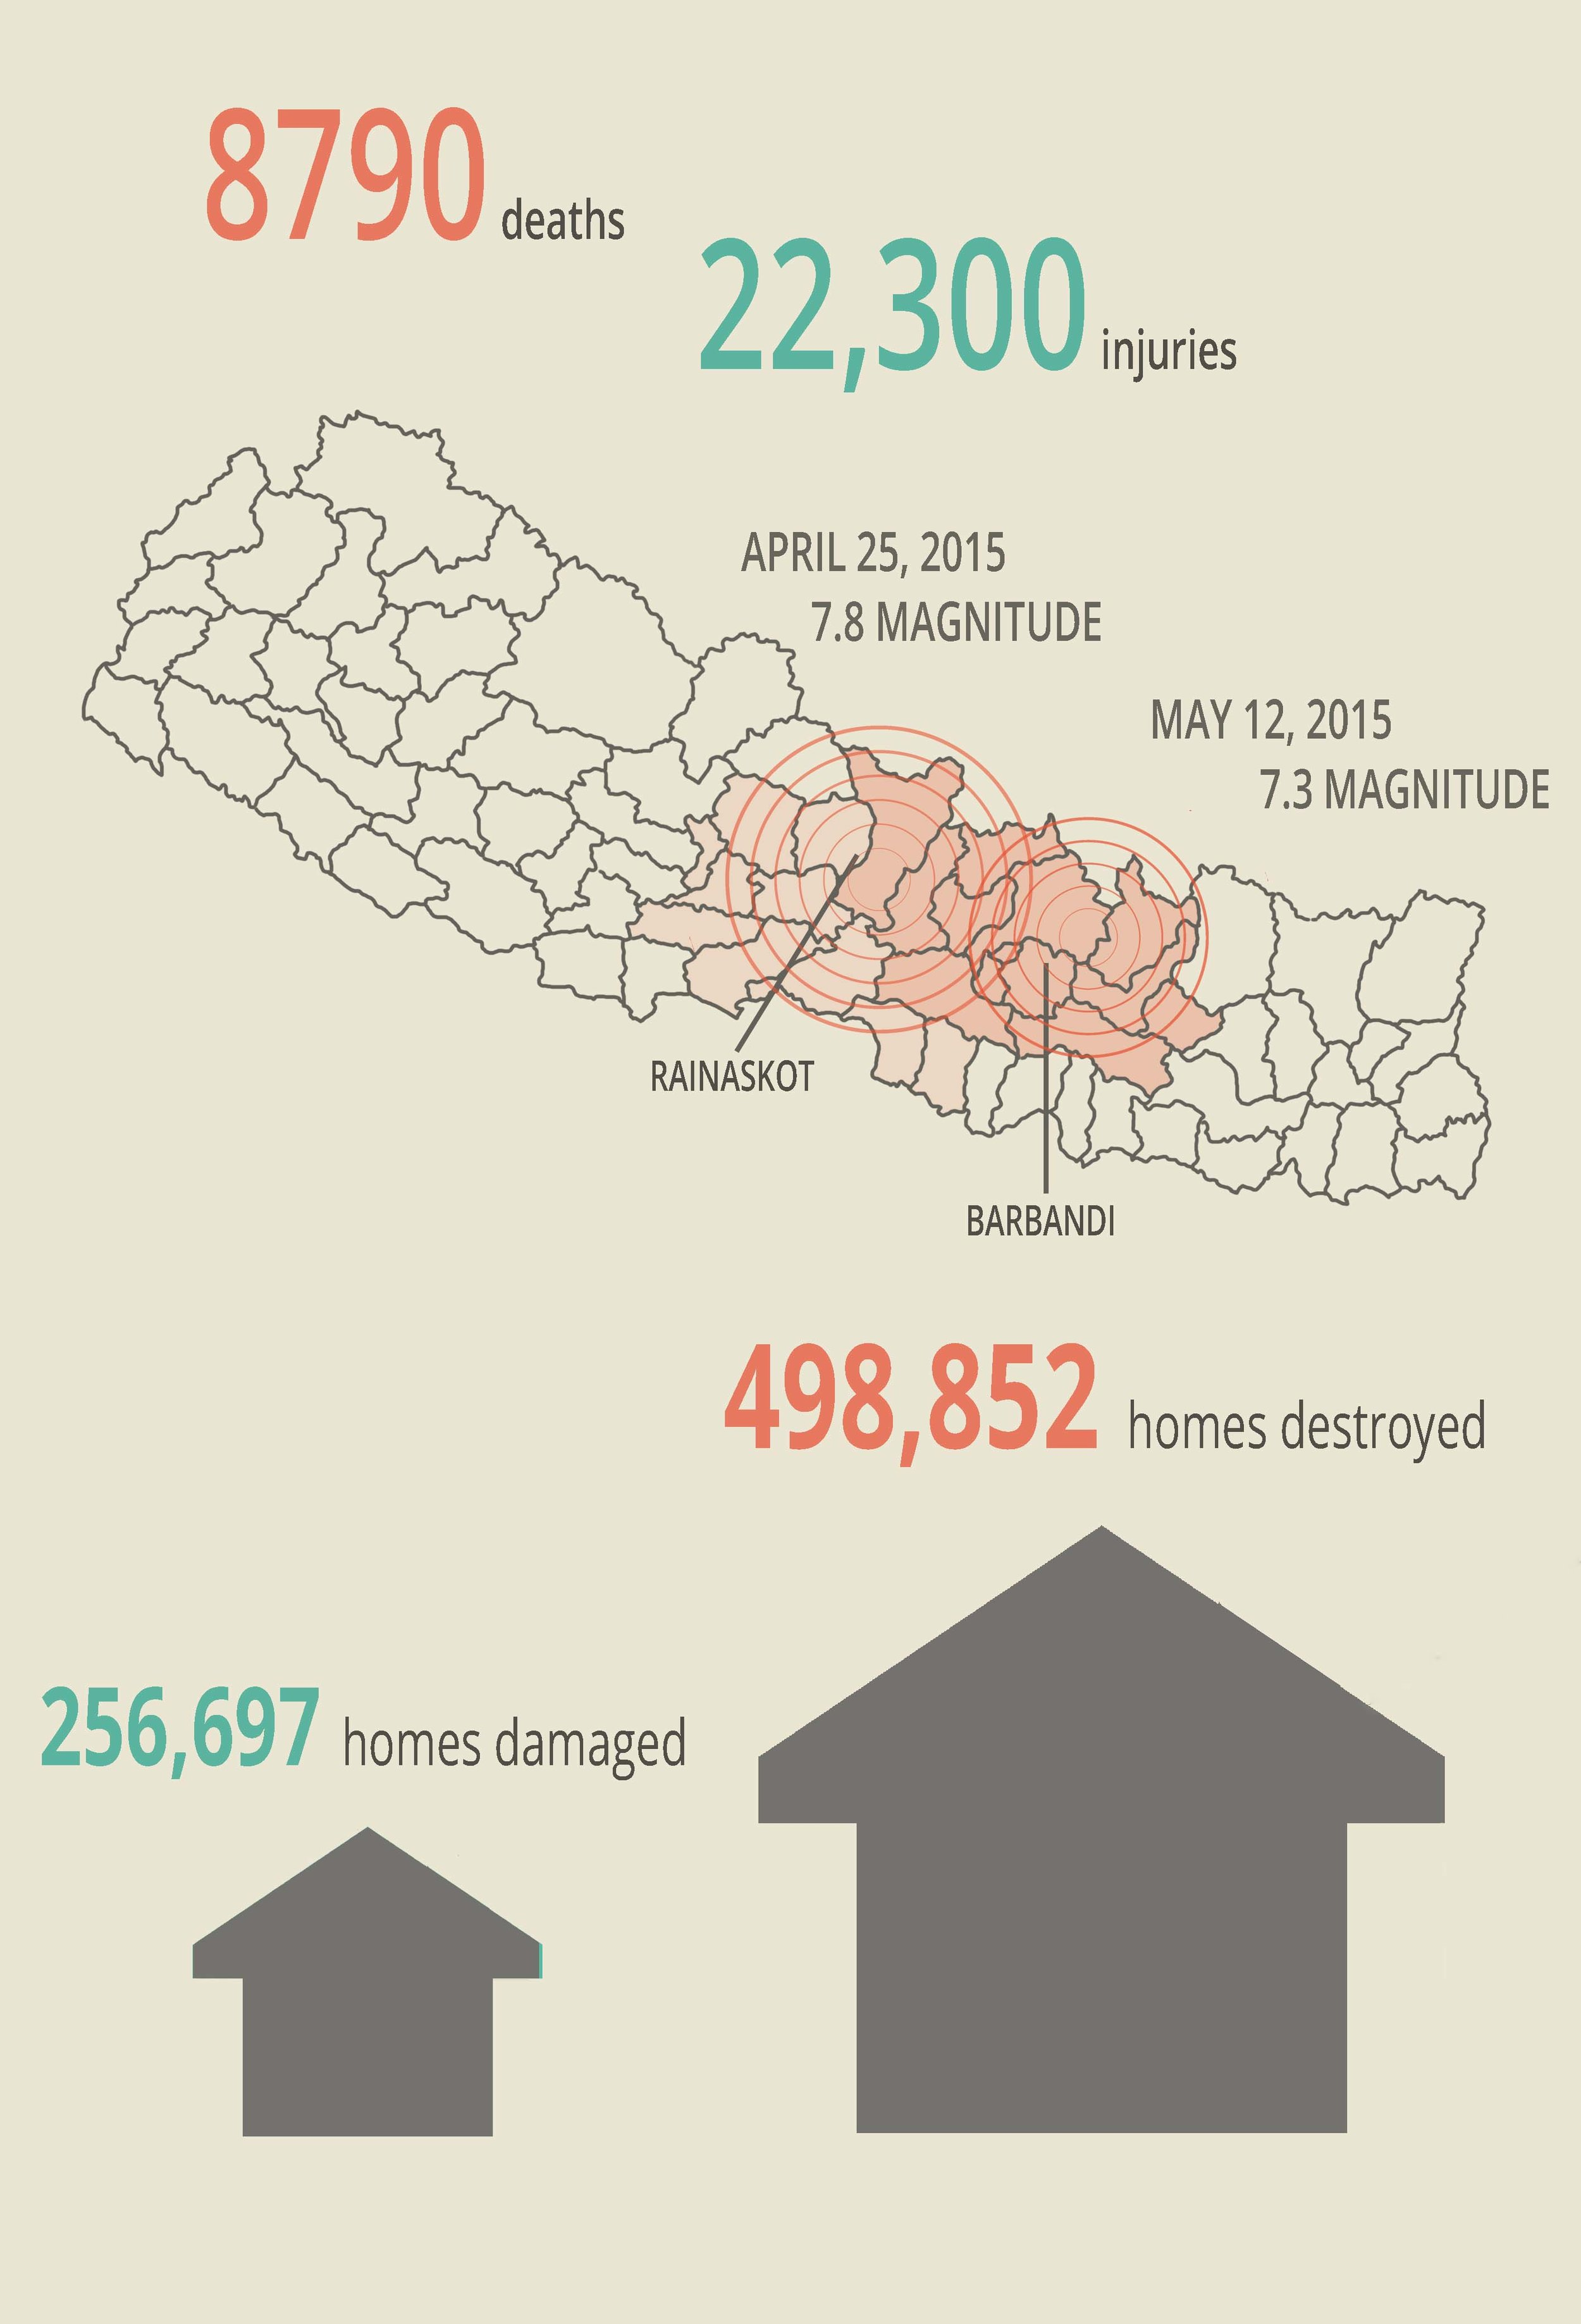 Earthquake statistics were taken from the Nepal Planning Commission report titled  Post Disaster Needs Assessment Volume B